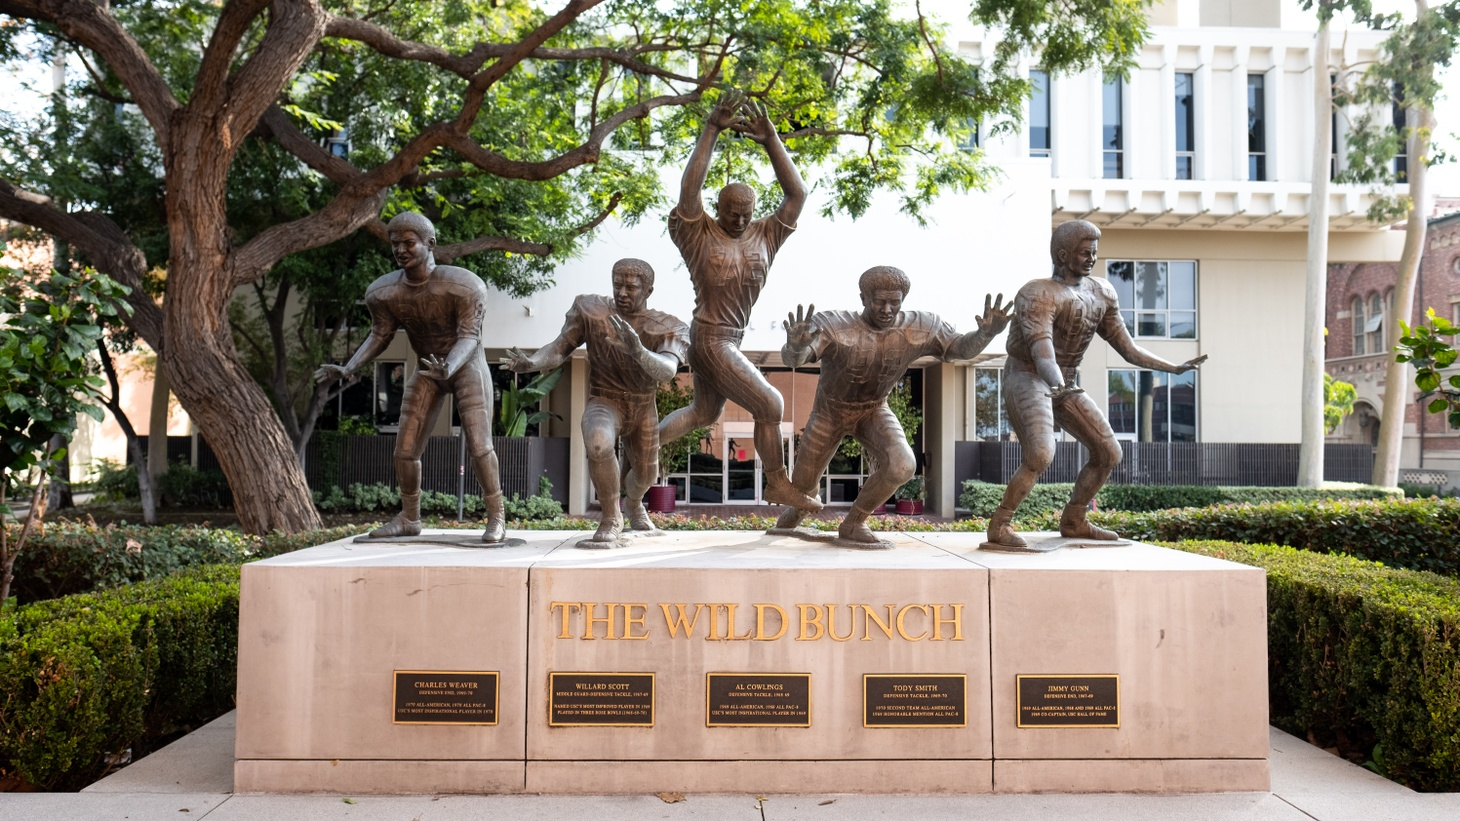 "Statues honor ""the Wild Bunch"" football players from USC. Now more than a dozen college football players from the Pac-12 Conference are threatening to boycott the fall training camp and following games unless the NCAA addresses their concerns, including medical coverage for players and pay cuts for coaches."